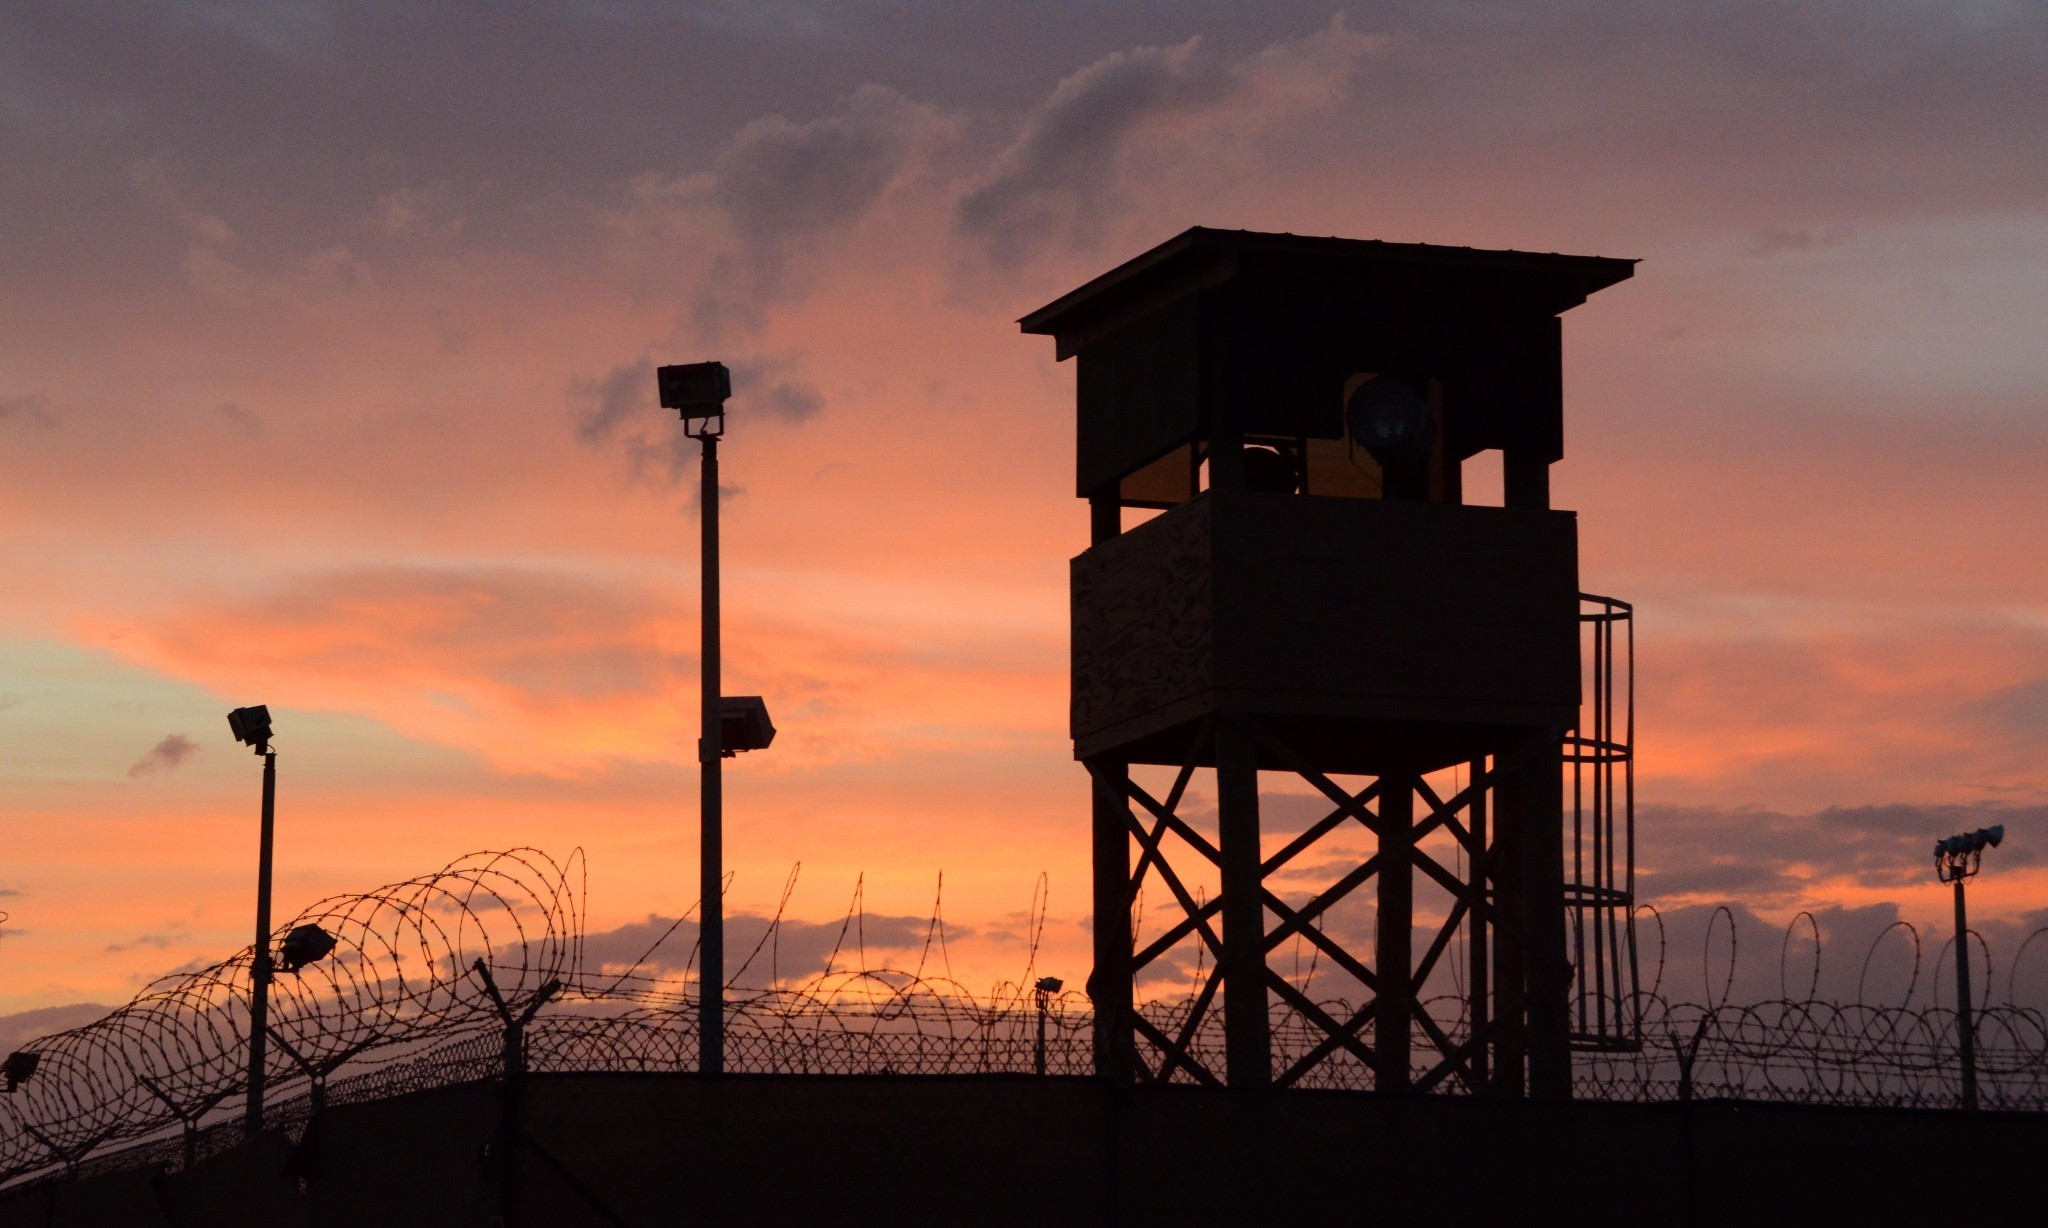 A tour of Guantánamo Bay: ghostlike figures wait as a promise goes unfulfilled